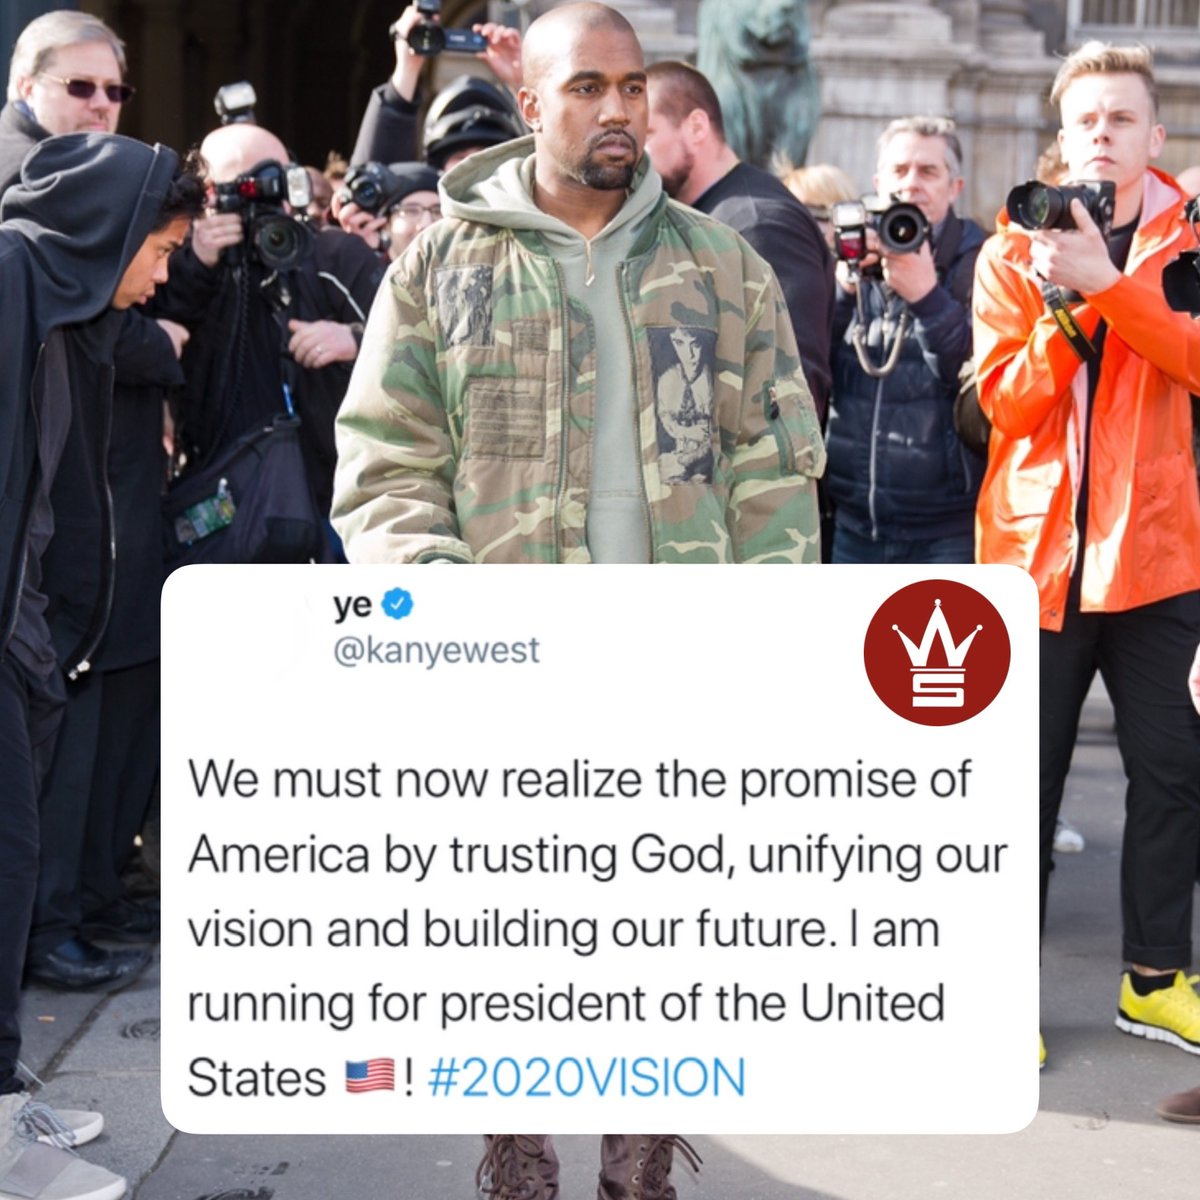 Kanye West announces he's running for President! 🇺🇸👀 @KanyeWest https://t.co/ppCgntwDgc